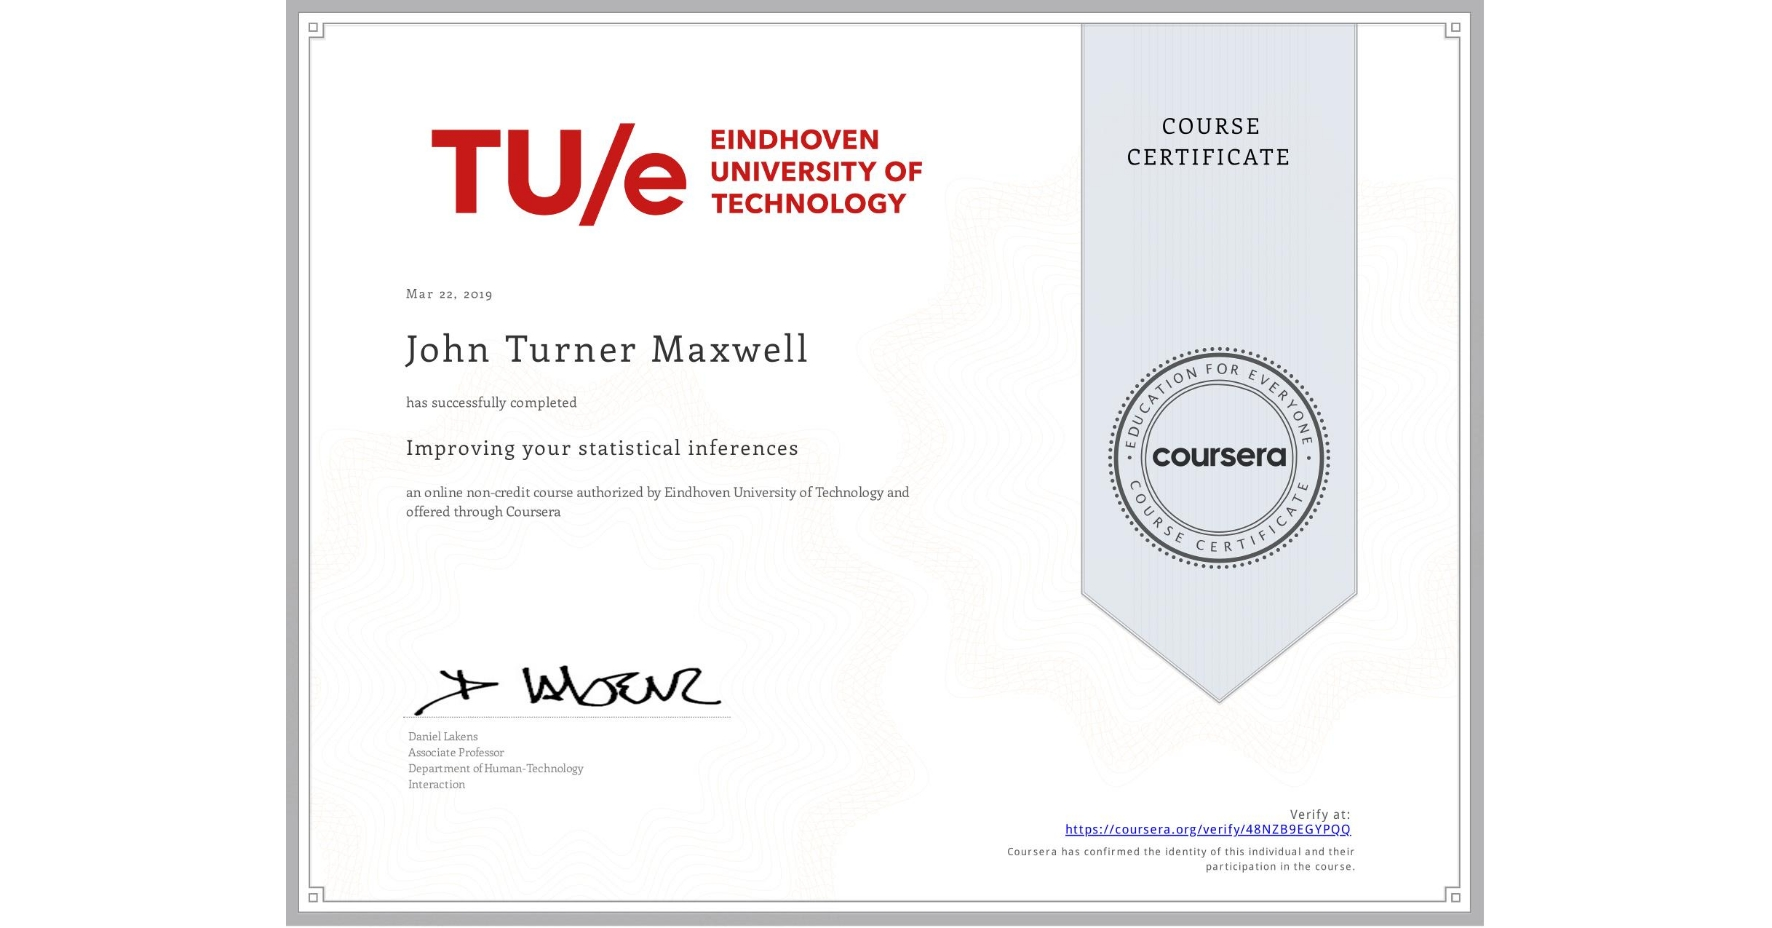 View certificate for John Turner Maxwell, Improving your statistical inferences, an online non-credit course authorized by Eindhoven University of Technology and offered through Coursera